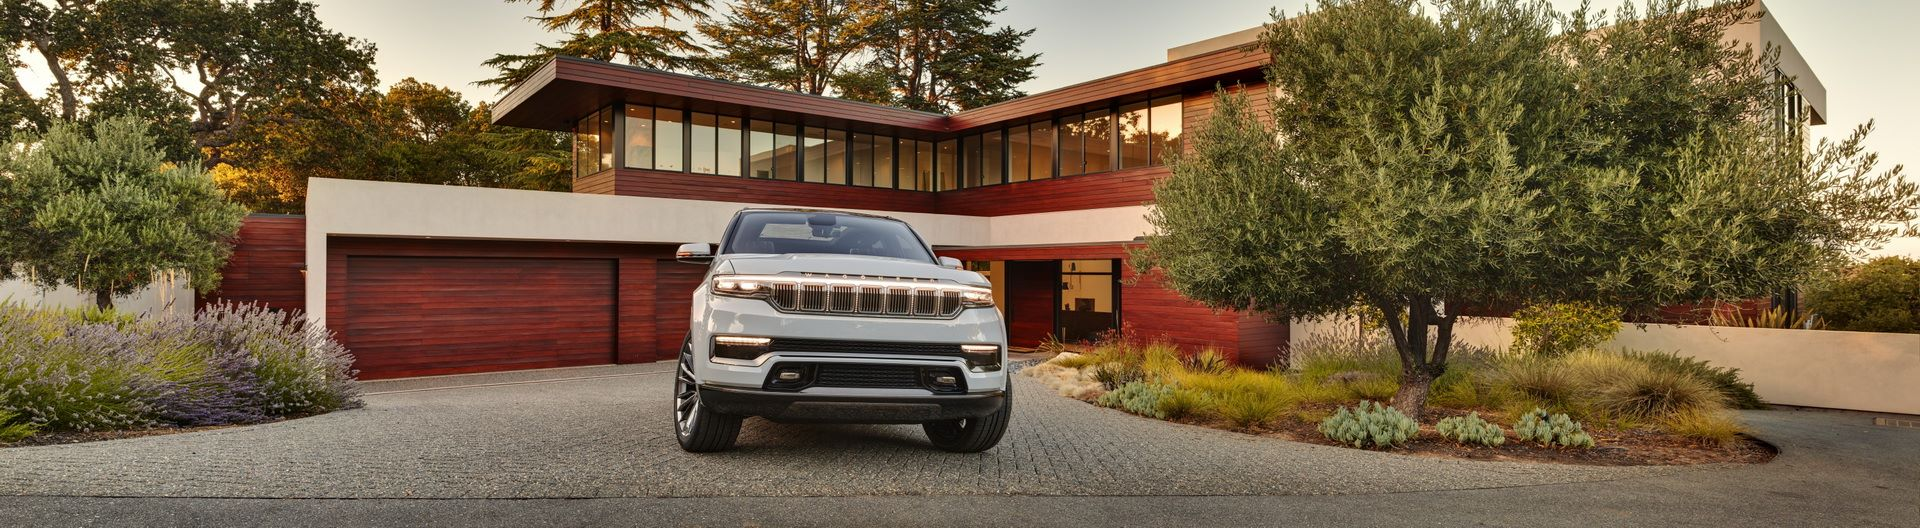 Jeep-Grand-Wagoneer-Concept-19